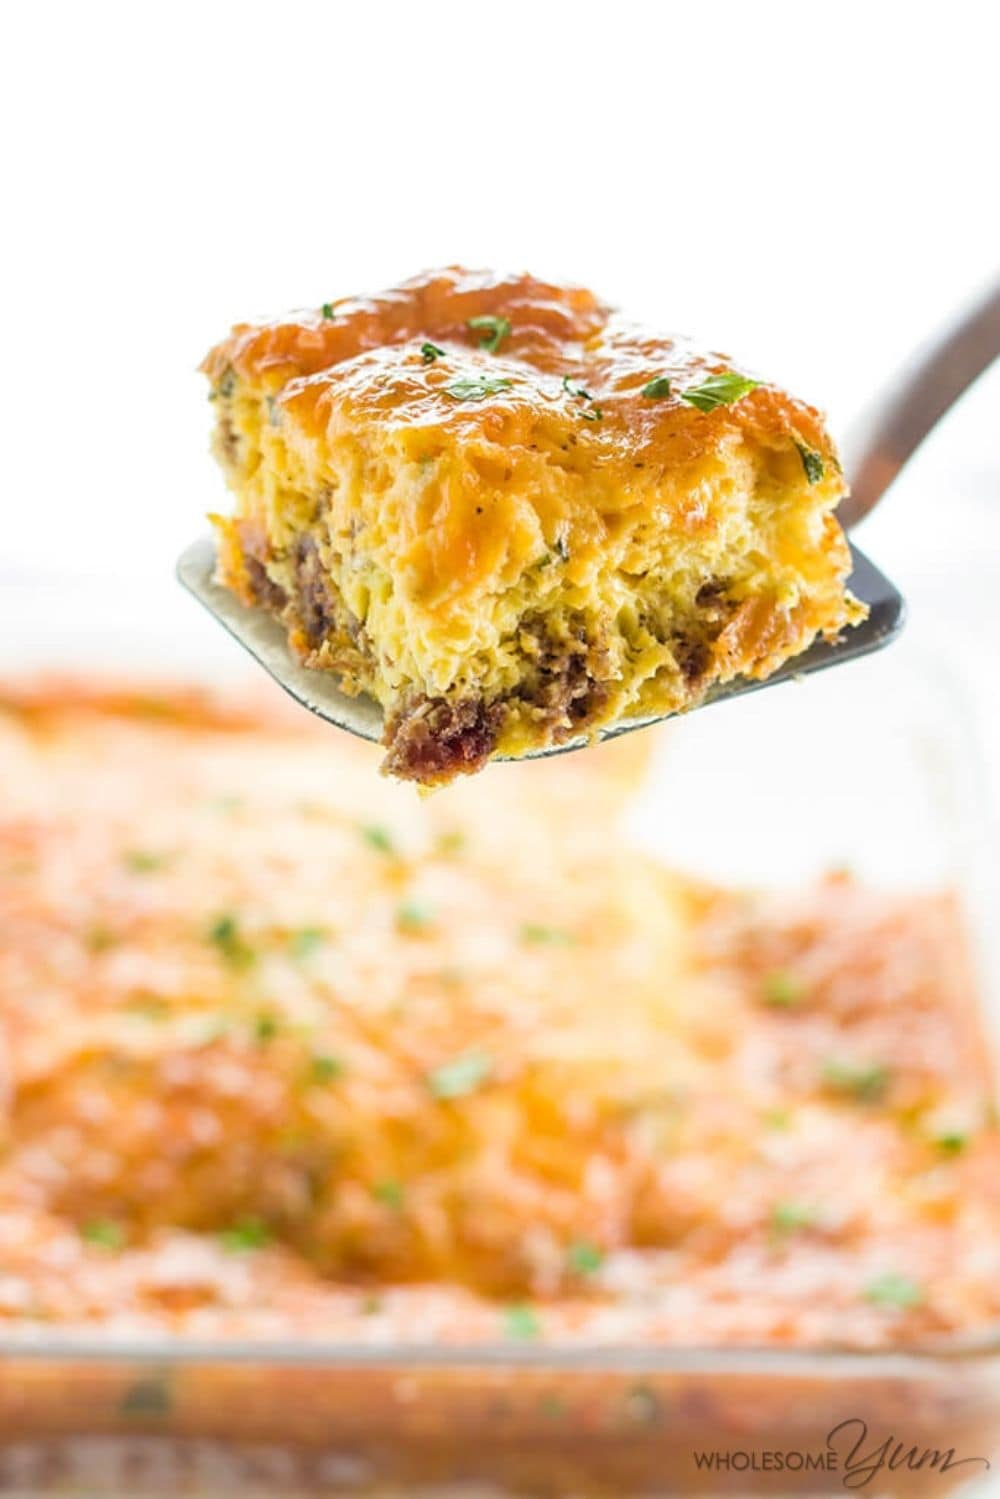 Keto Breakfast egg casserole with one square being served on a spatula